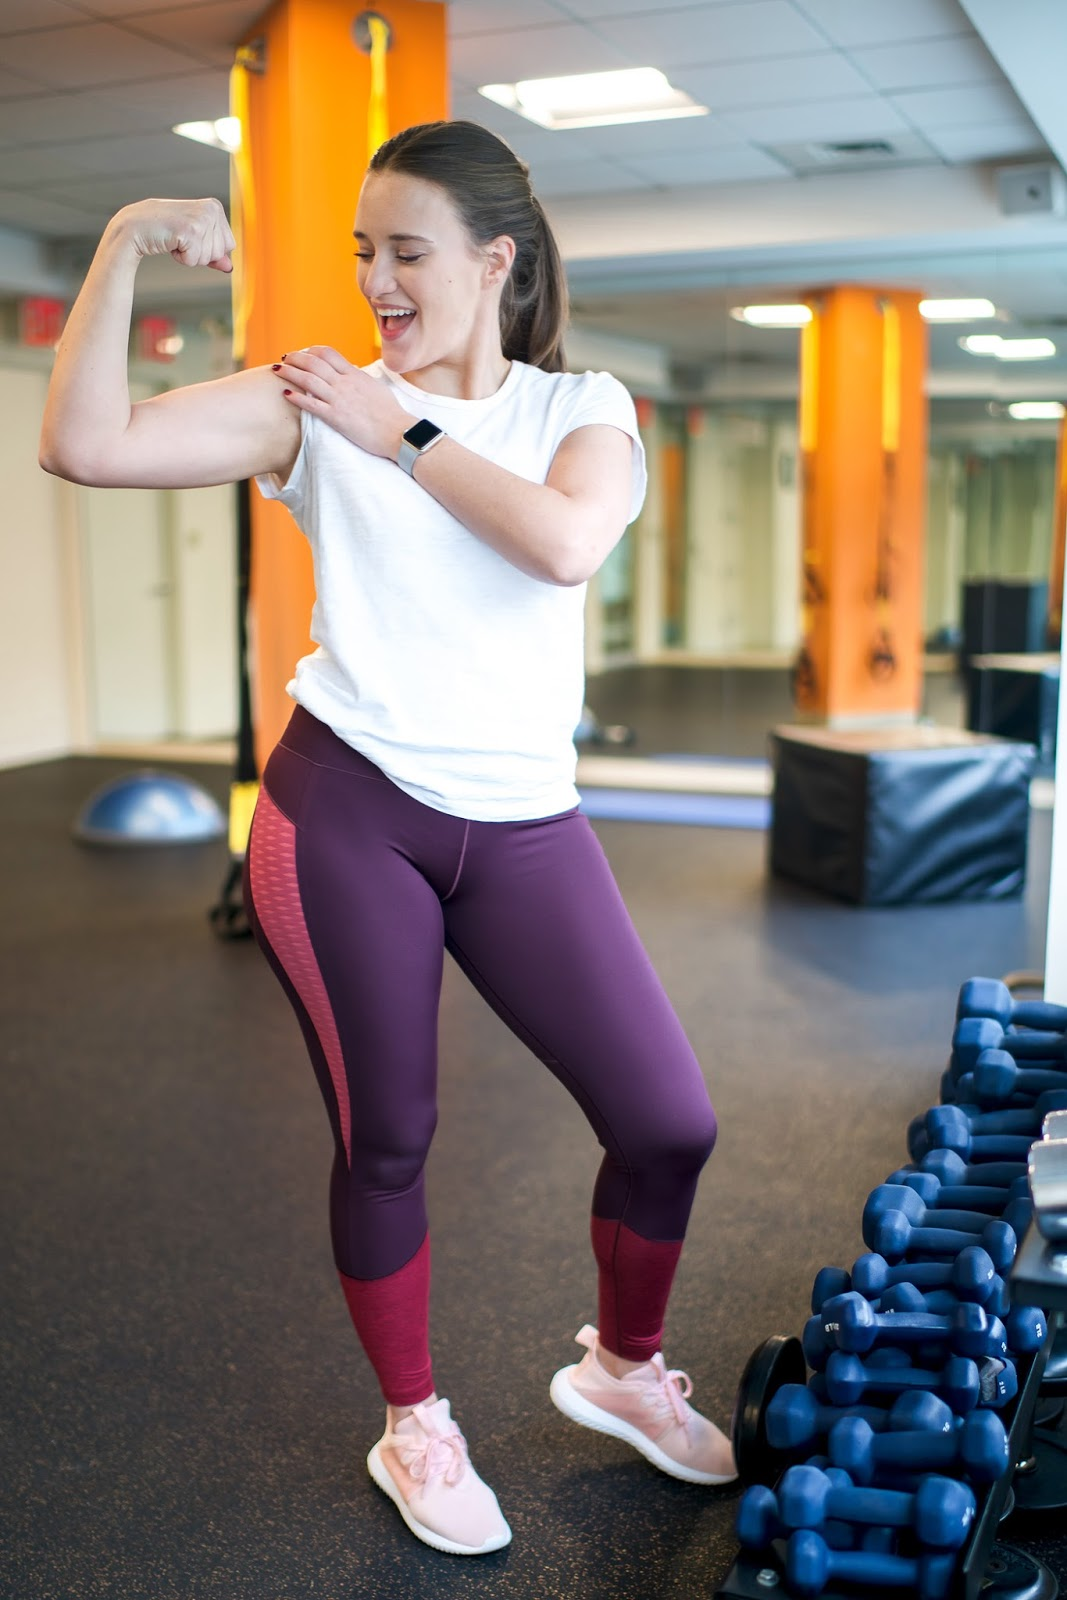 All About Work Out Motivation by popular New York lifestyle blogger Covering the Bases